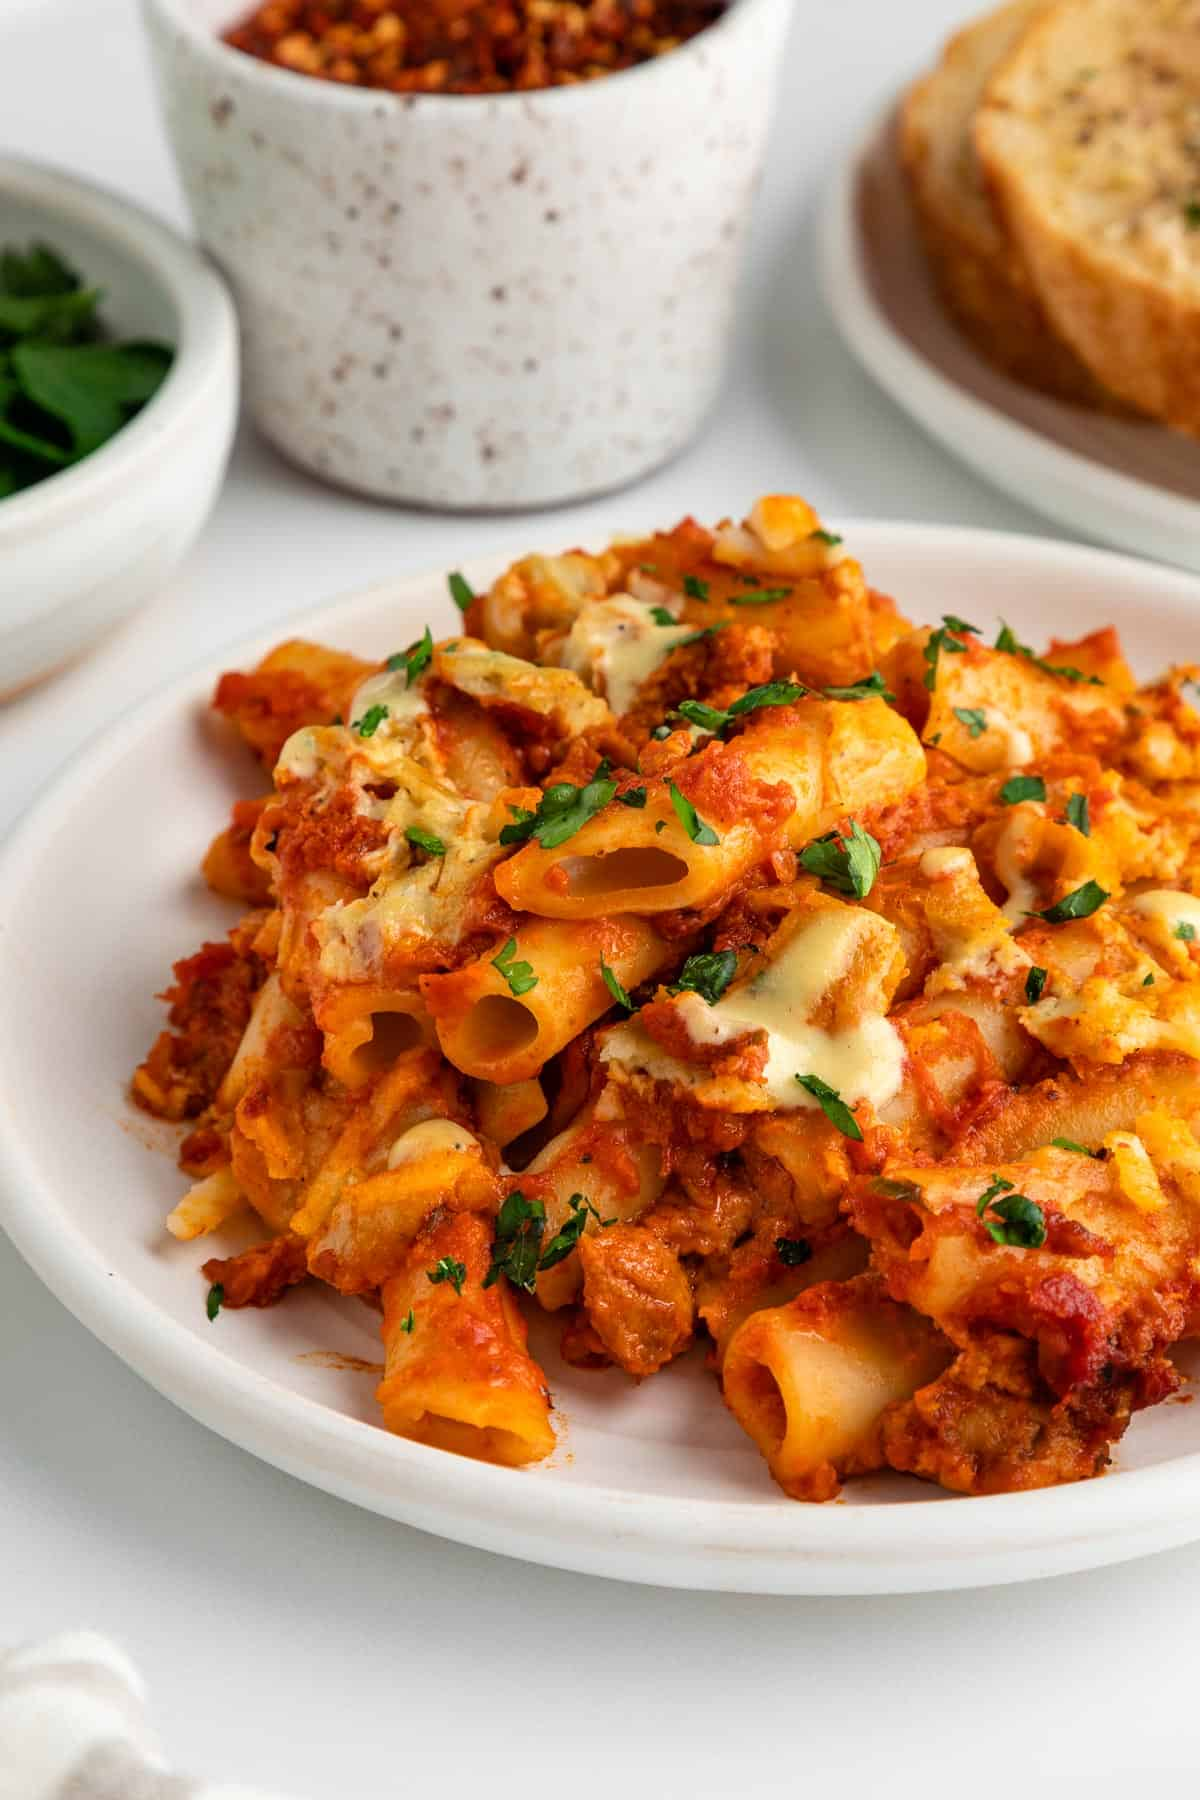 a close up image of vegan baked ziti on a white plate